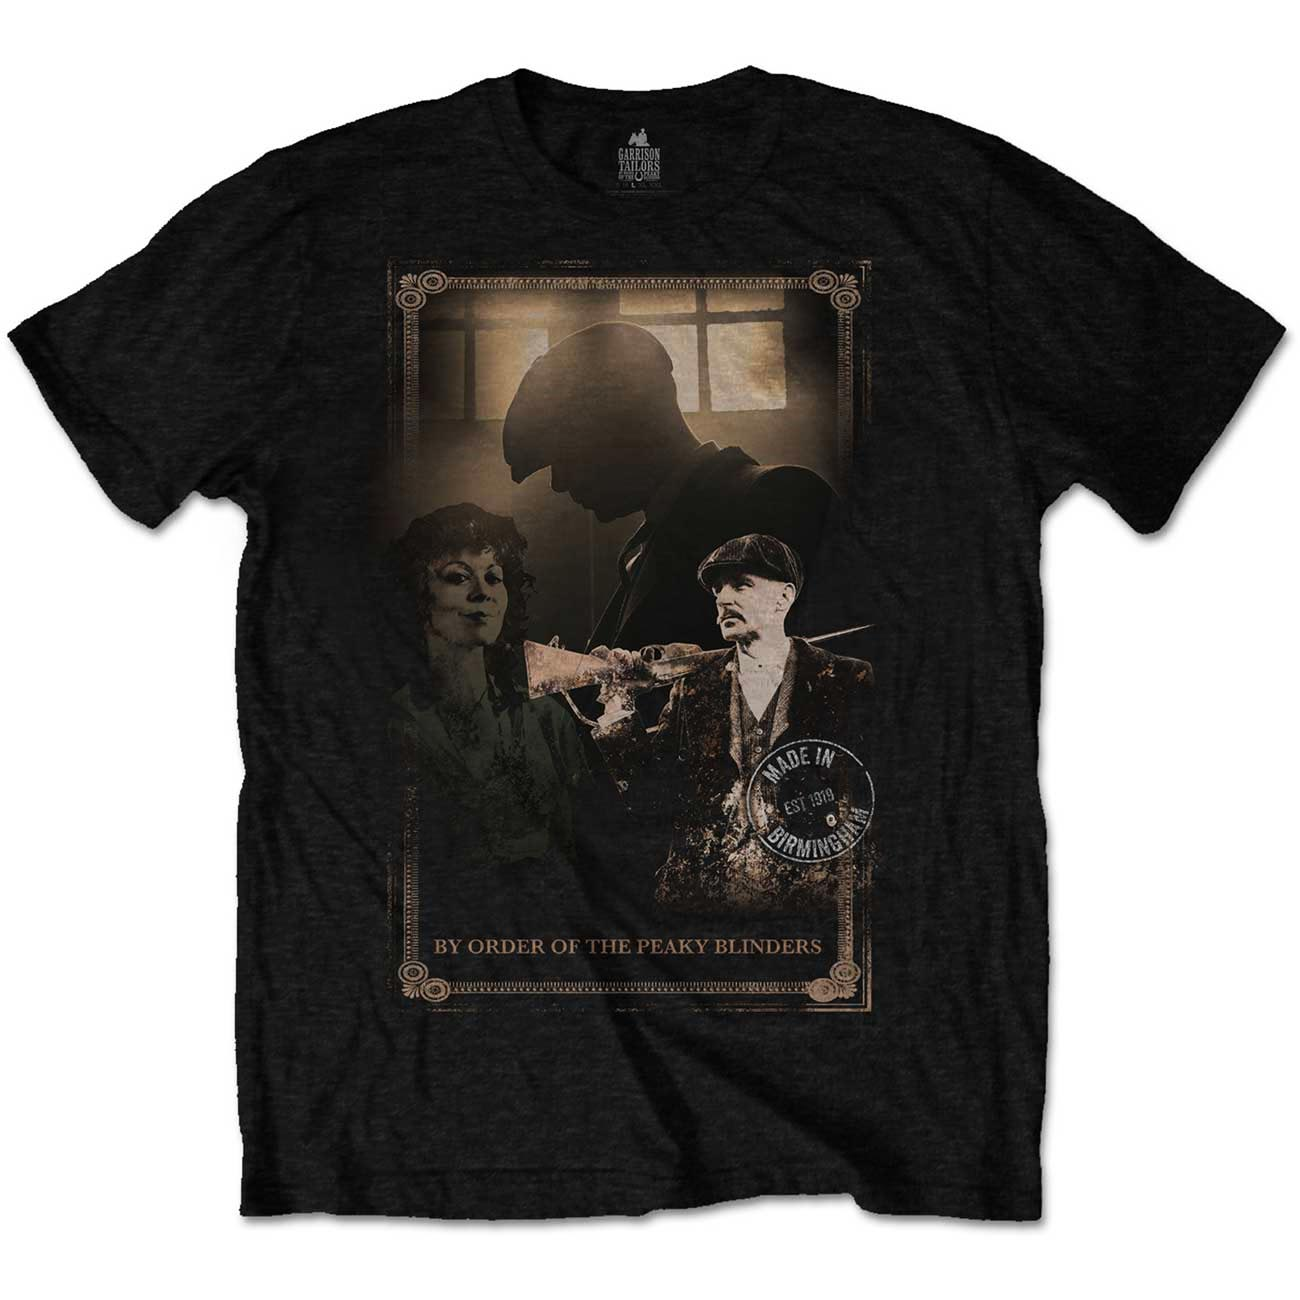 Official-T-Shirt-PEAKY-BLINDERS-Shelby-Brothers-039-Shotgun-039-Black-All-Sizes thumbnail 5